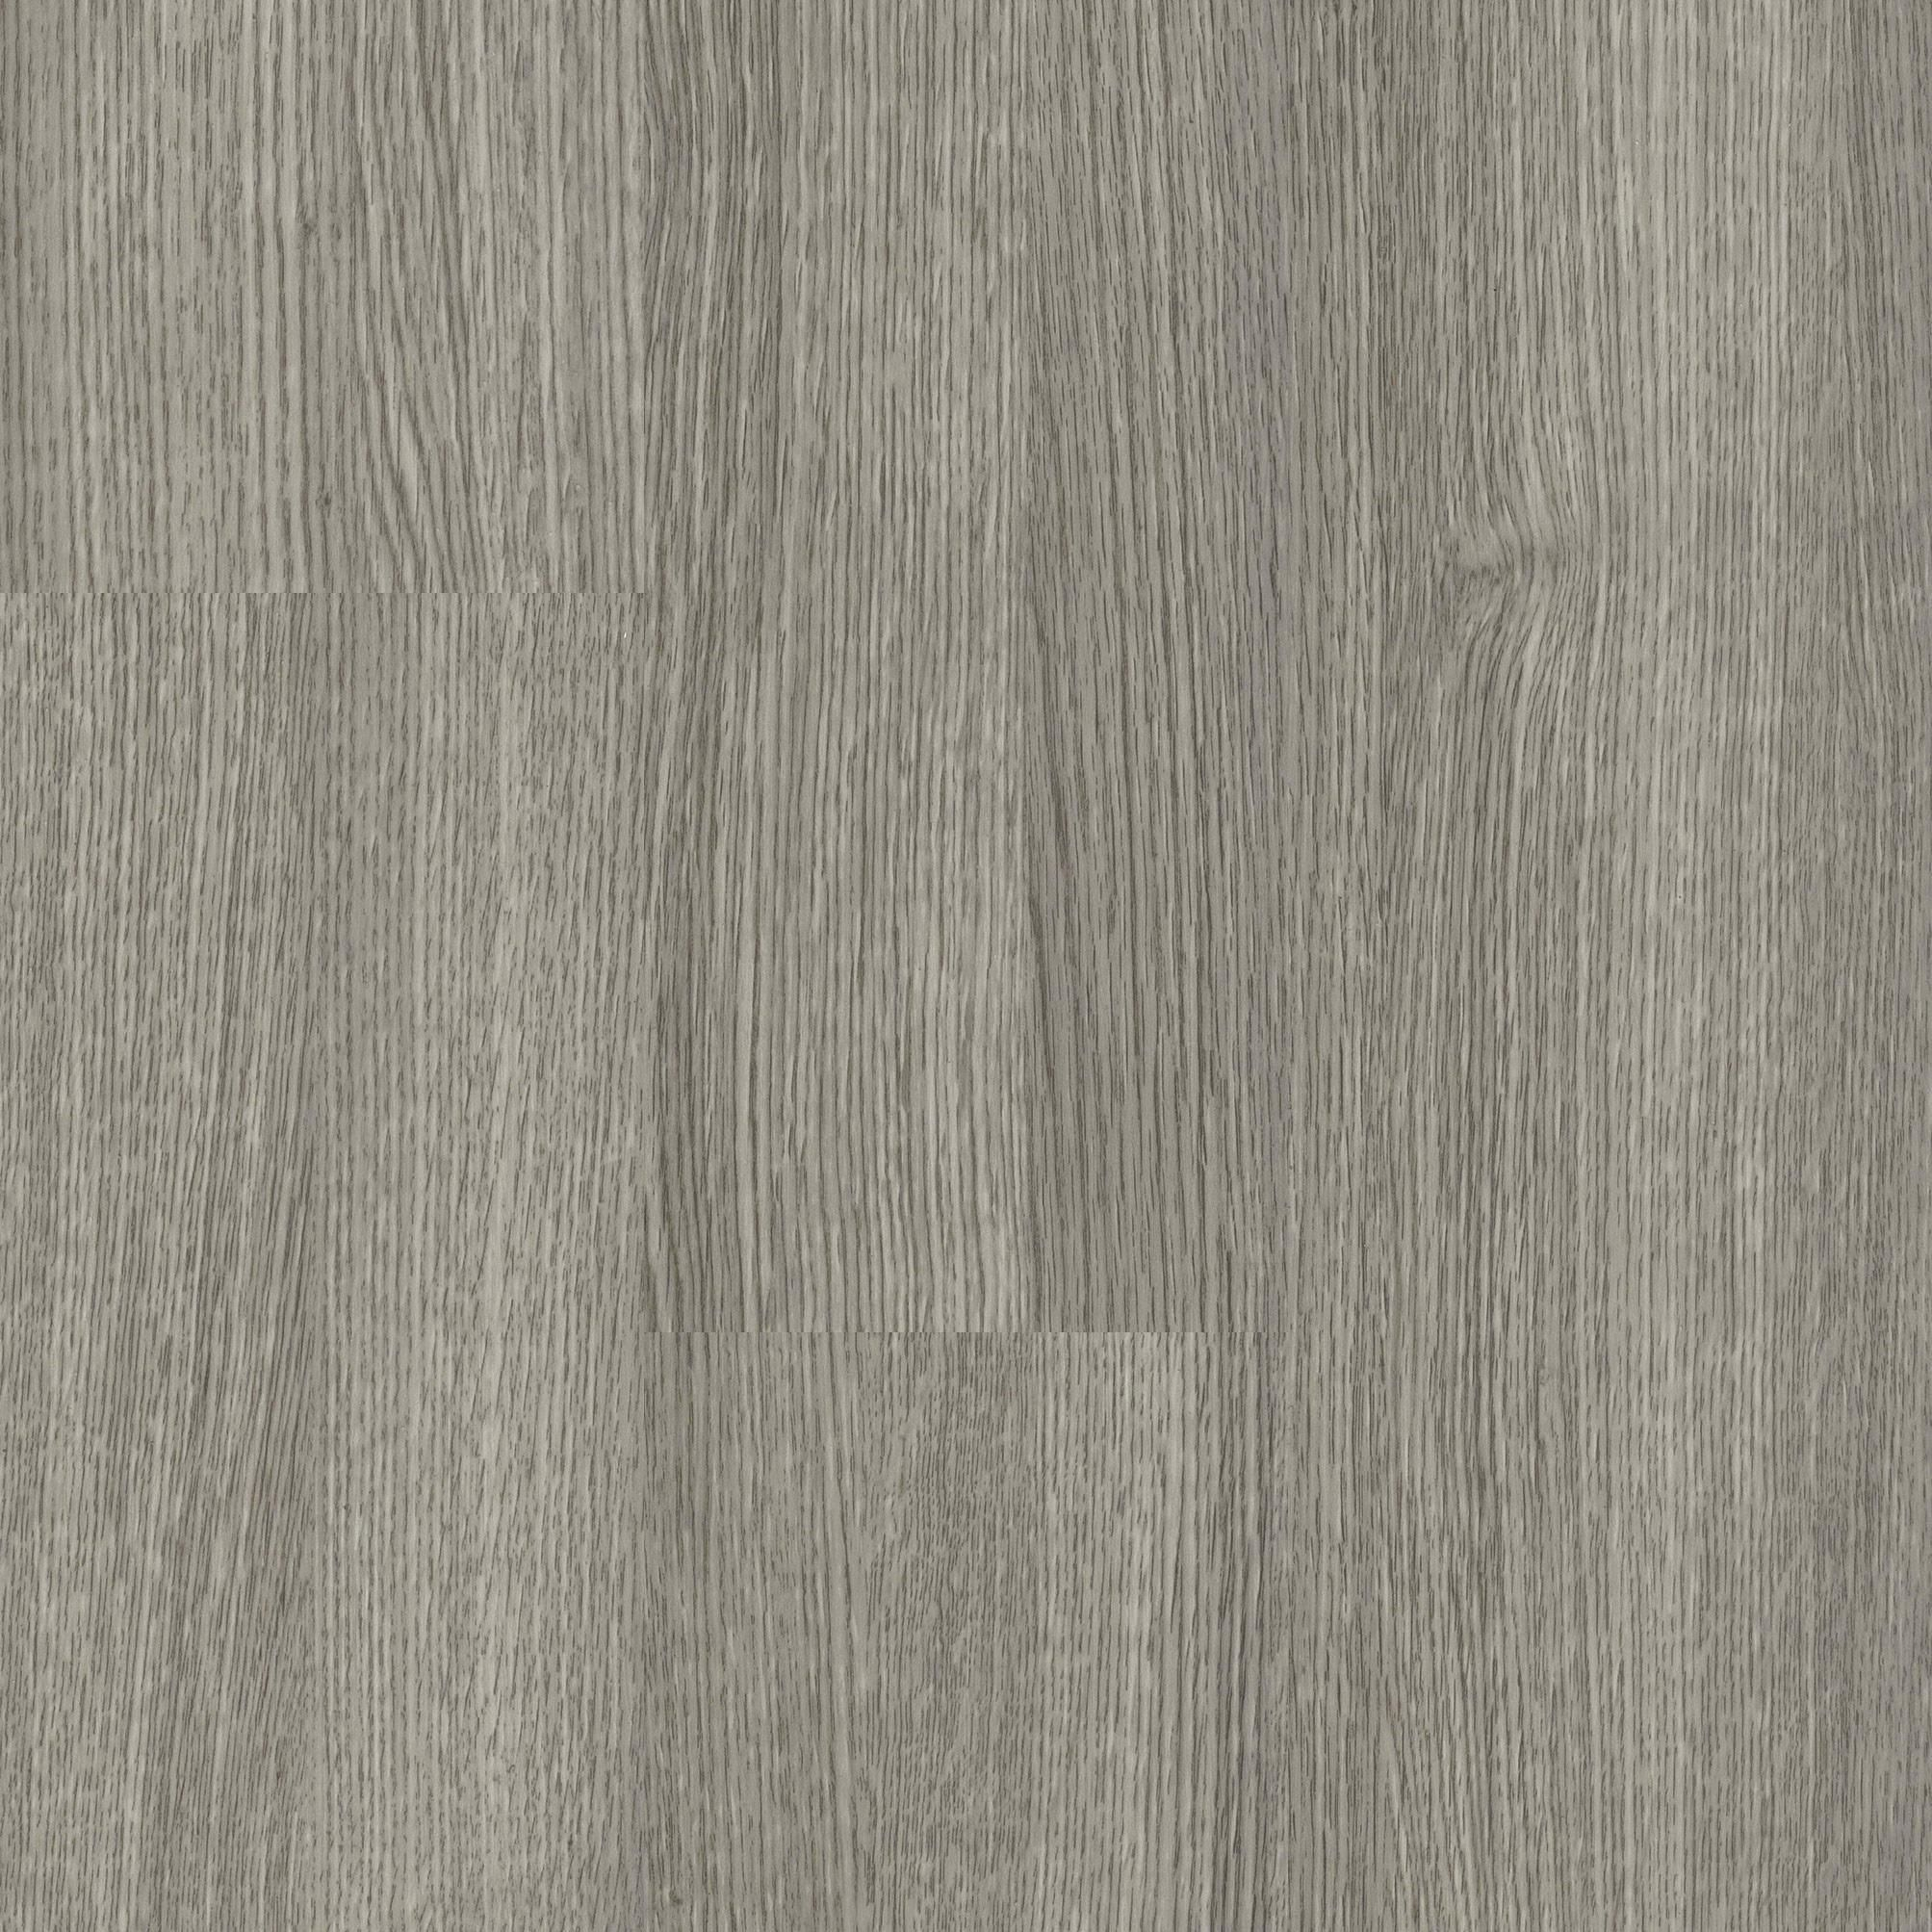 mohawk urban patina skyscraper waterproof vinyl flooring gray